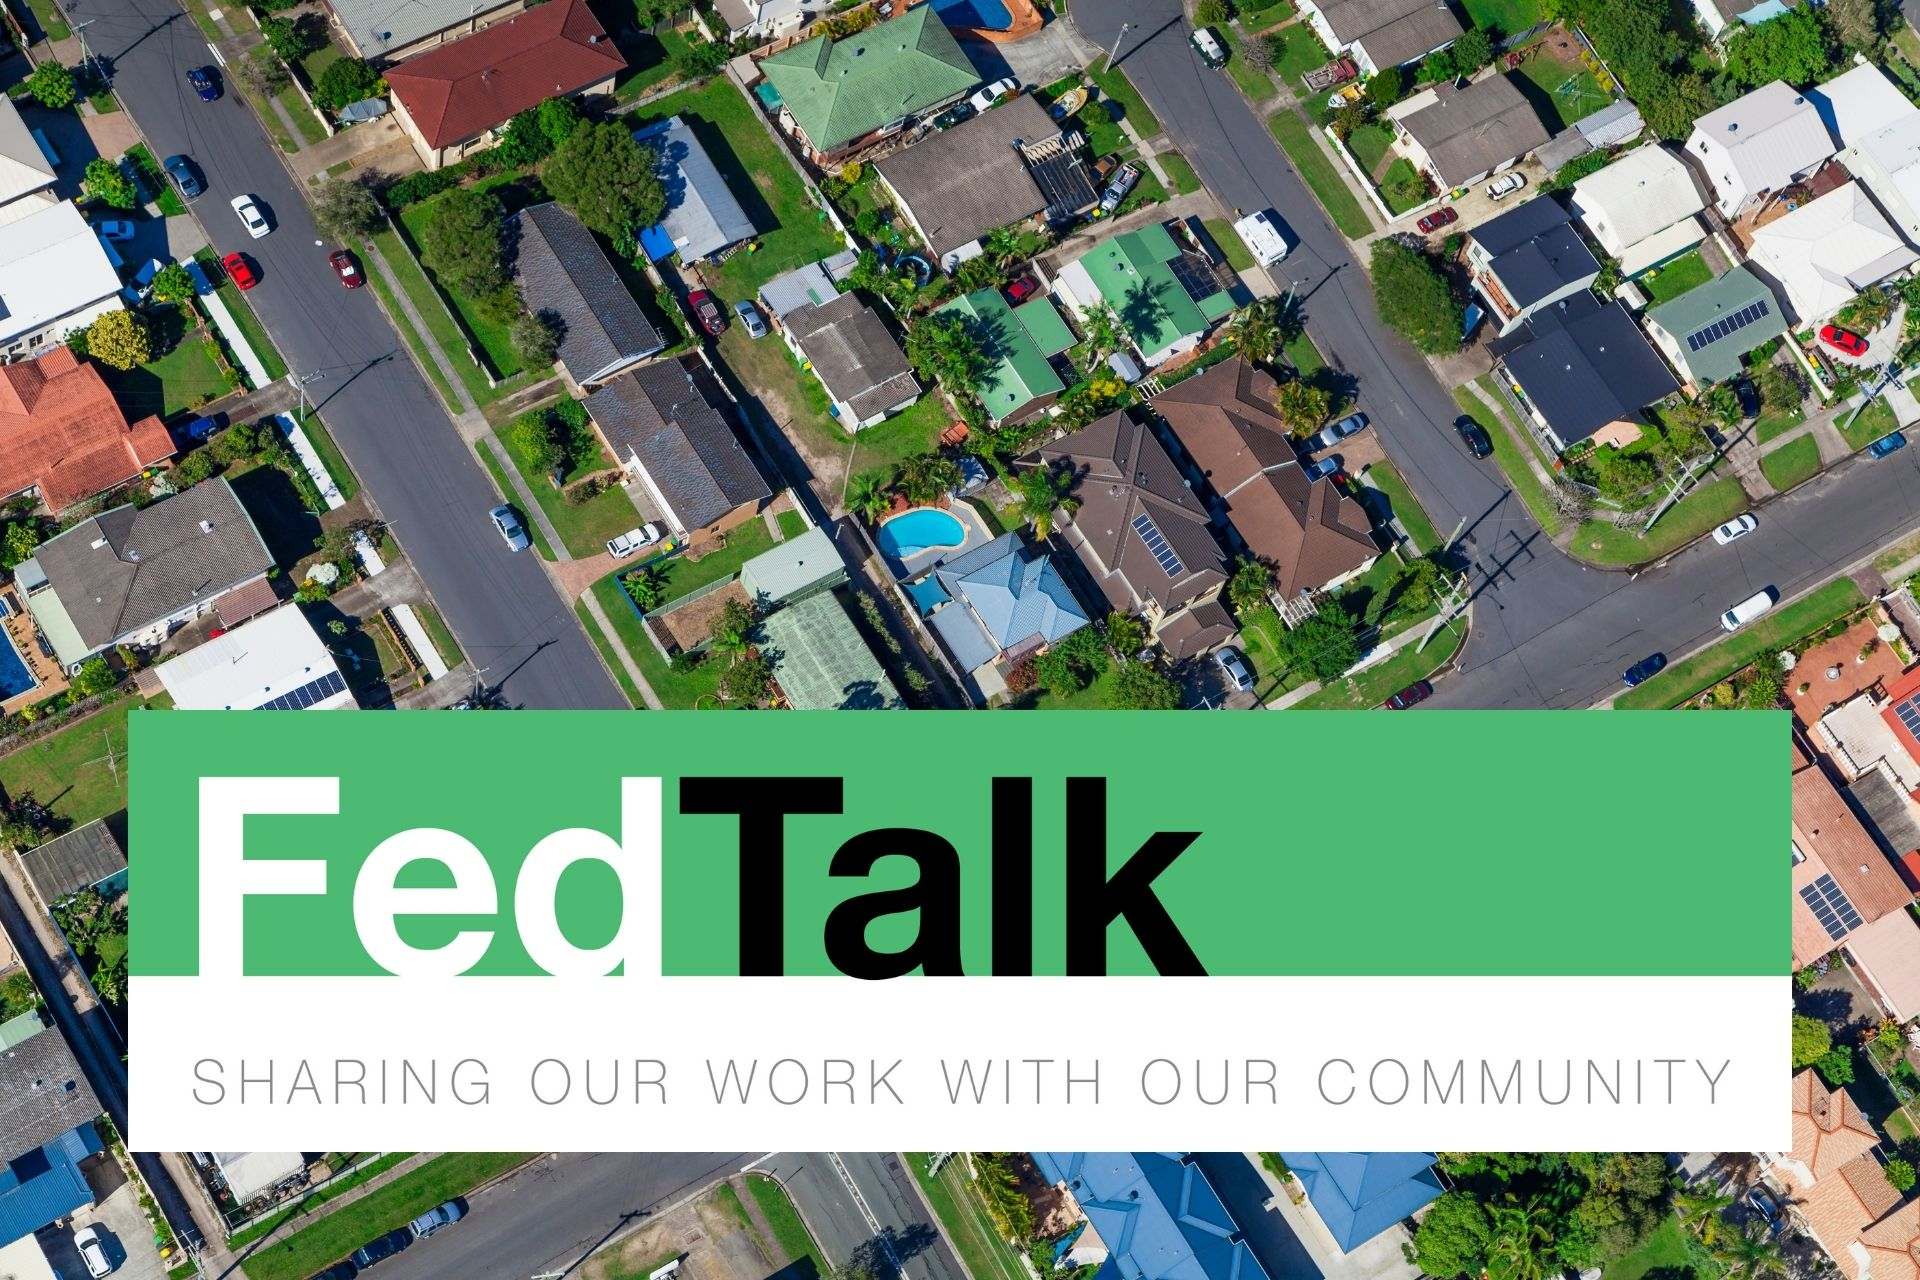 FedTalk: Sharing Our Work with Our Community